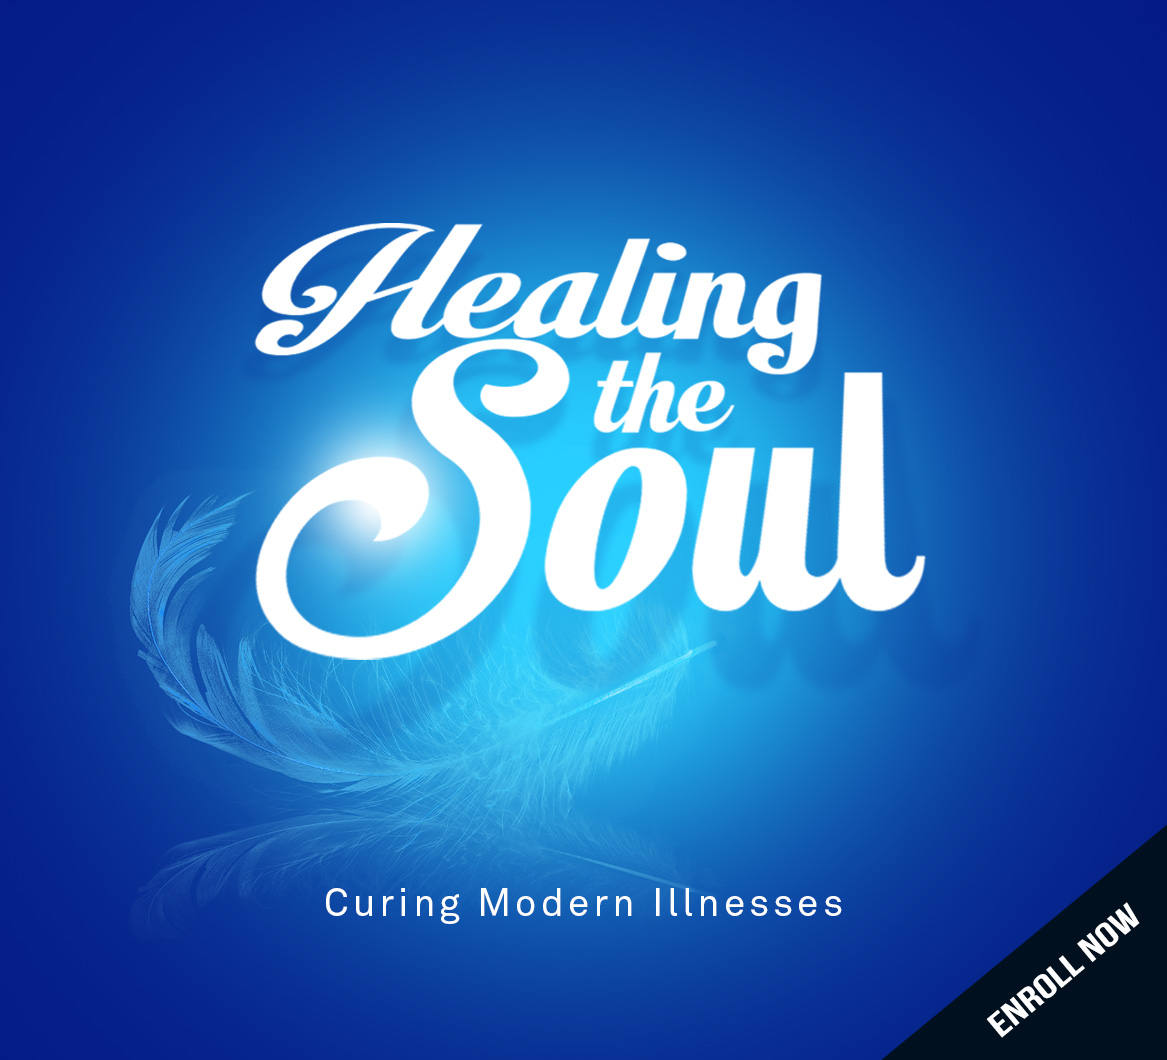 Healing the Soul: Curing Modern Illnesses